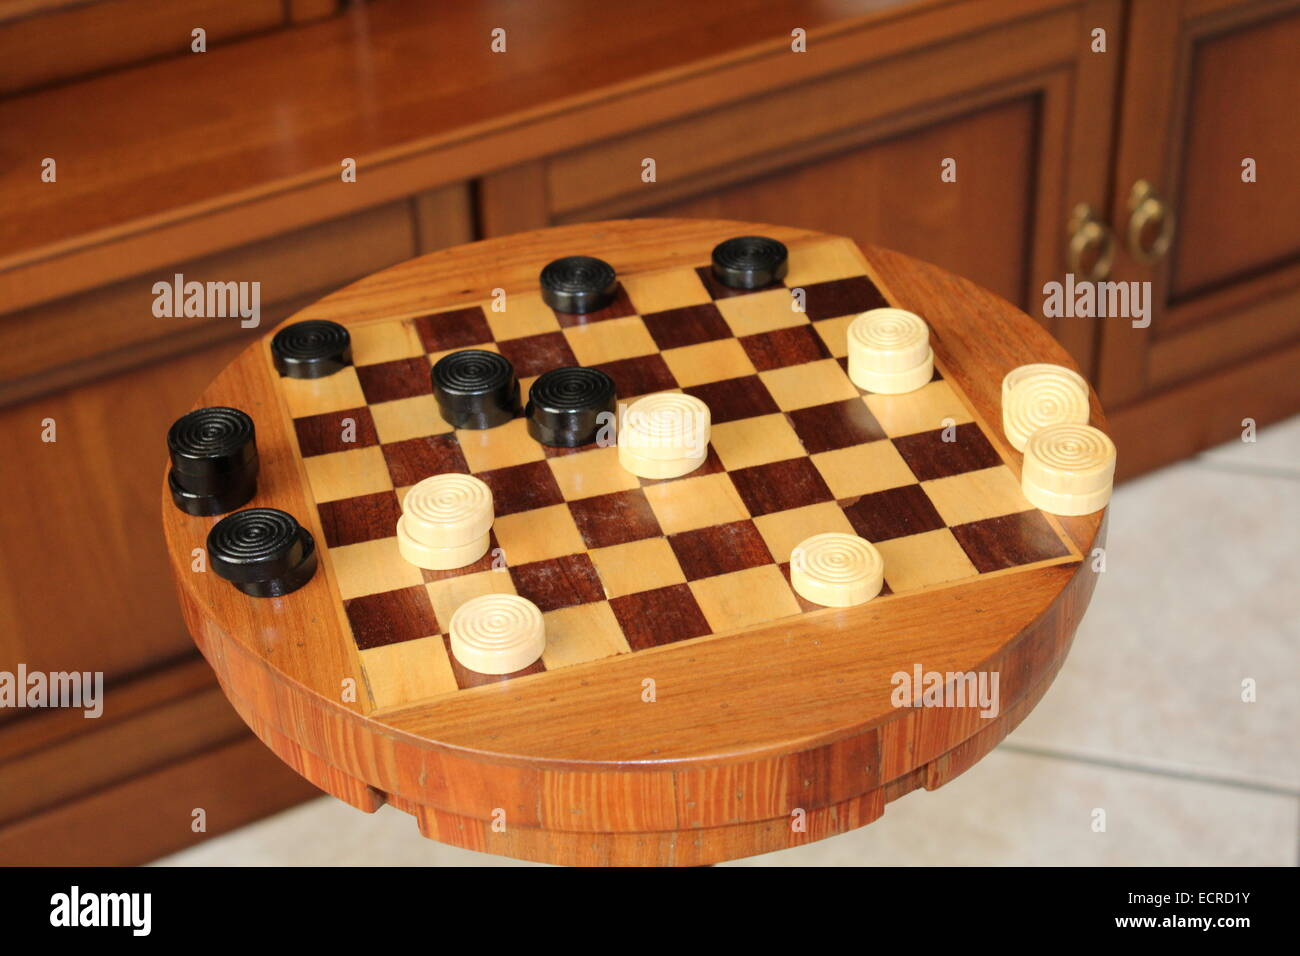 Draughts or Checkers - Stock Image